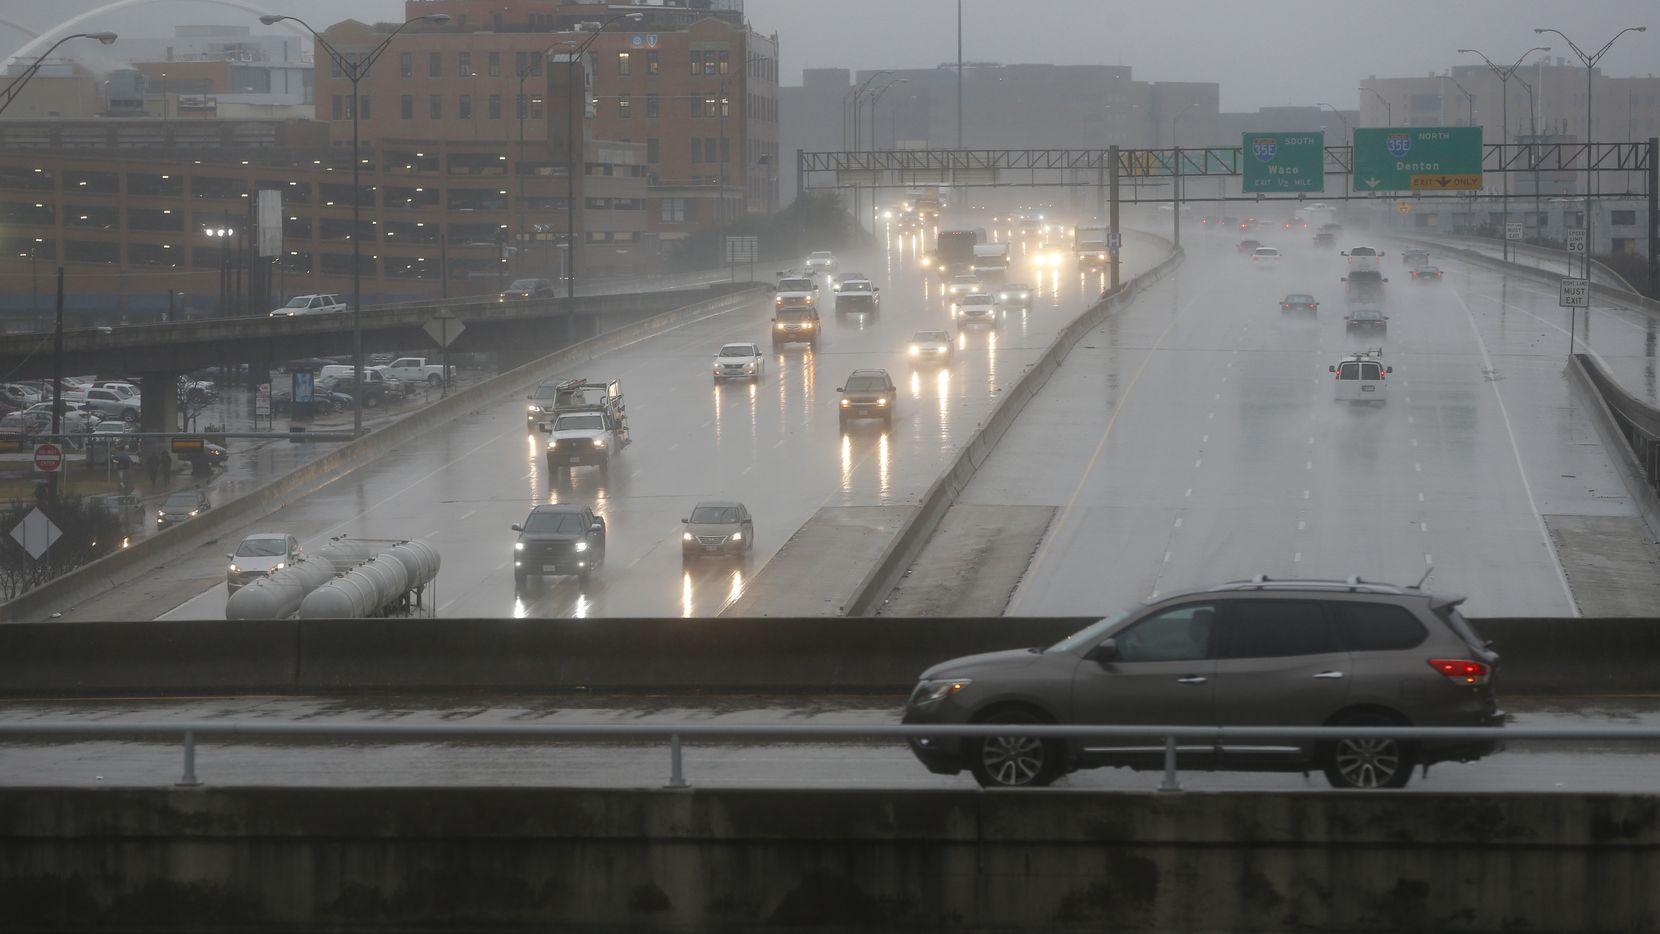 A car passes on St. Paul Street over Woodall Rodgers Freeway on a cold, rainy morning in Dallas on Jan. 2, 2019.